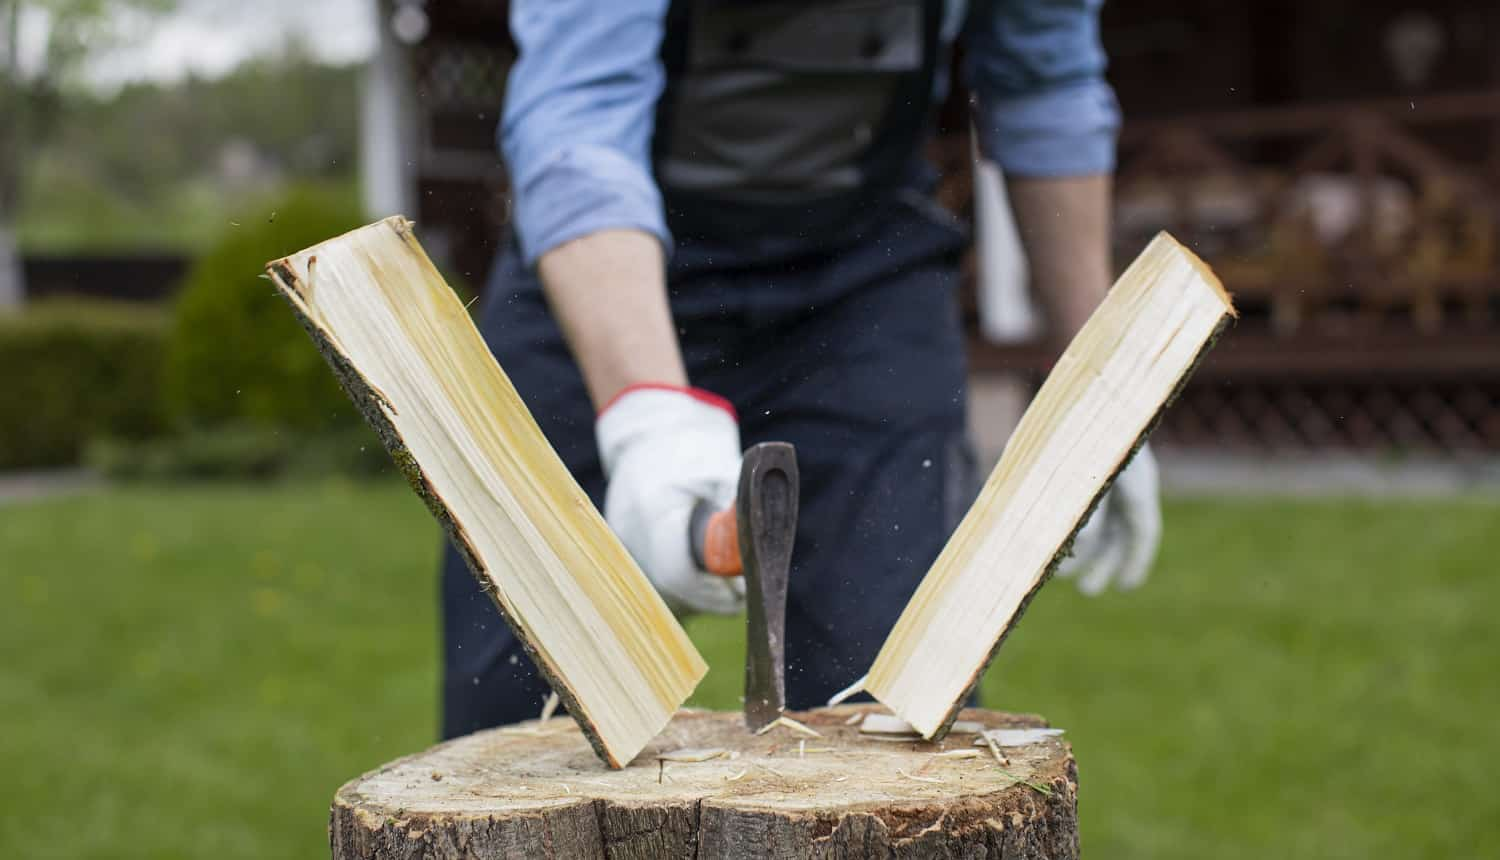 Close up strong man lumberjack in uniform chopping wood with sharp ax on wooden hemp, sawdust fly to sides. Powerful ax blow, woodworking, harvesting wood for winter. Splitting logs with sharp hatchet